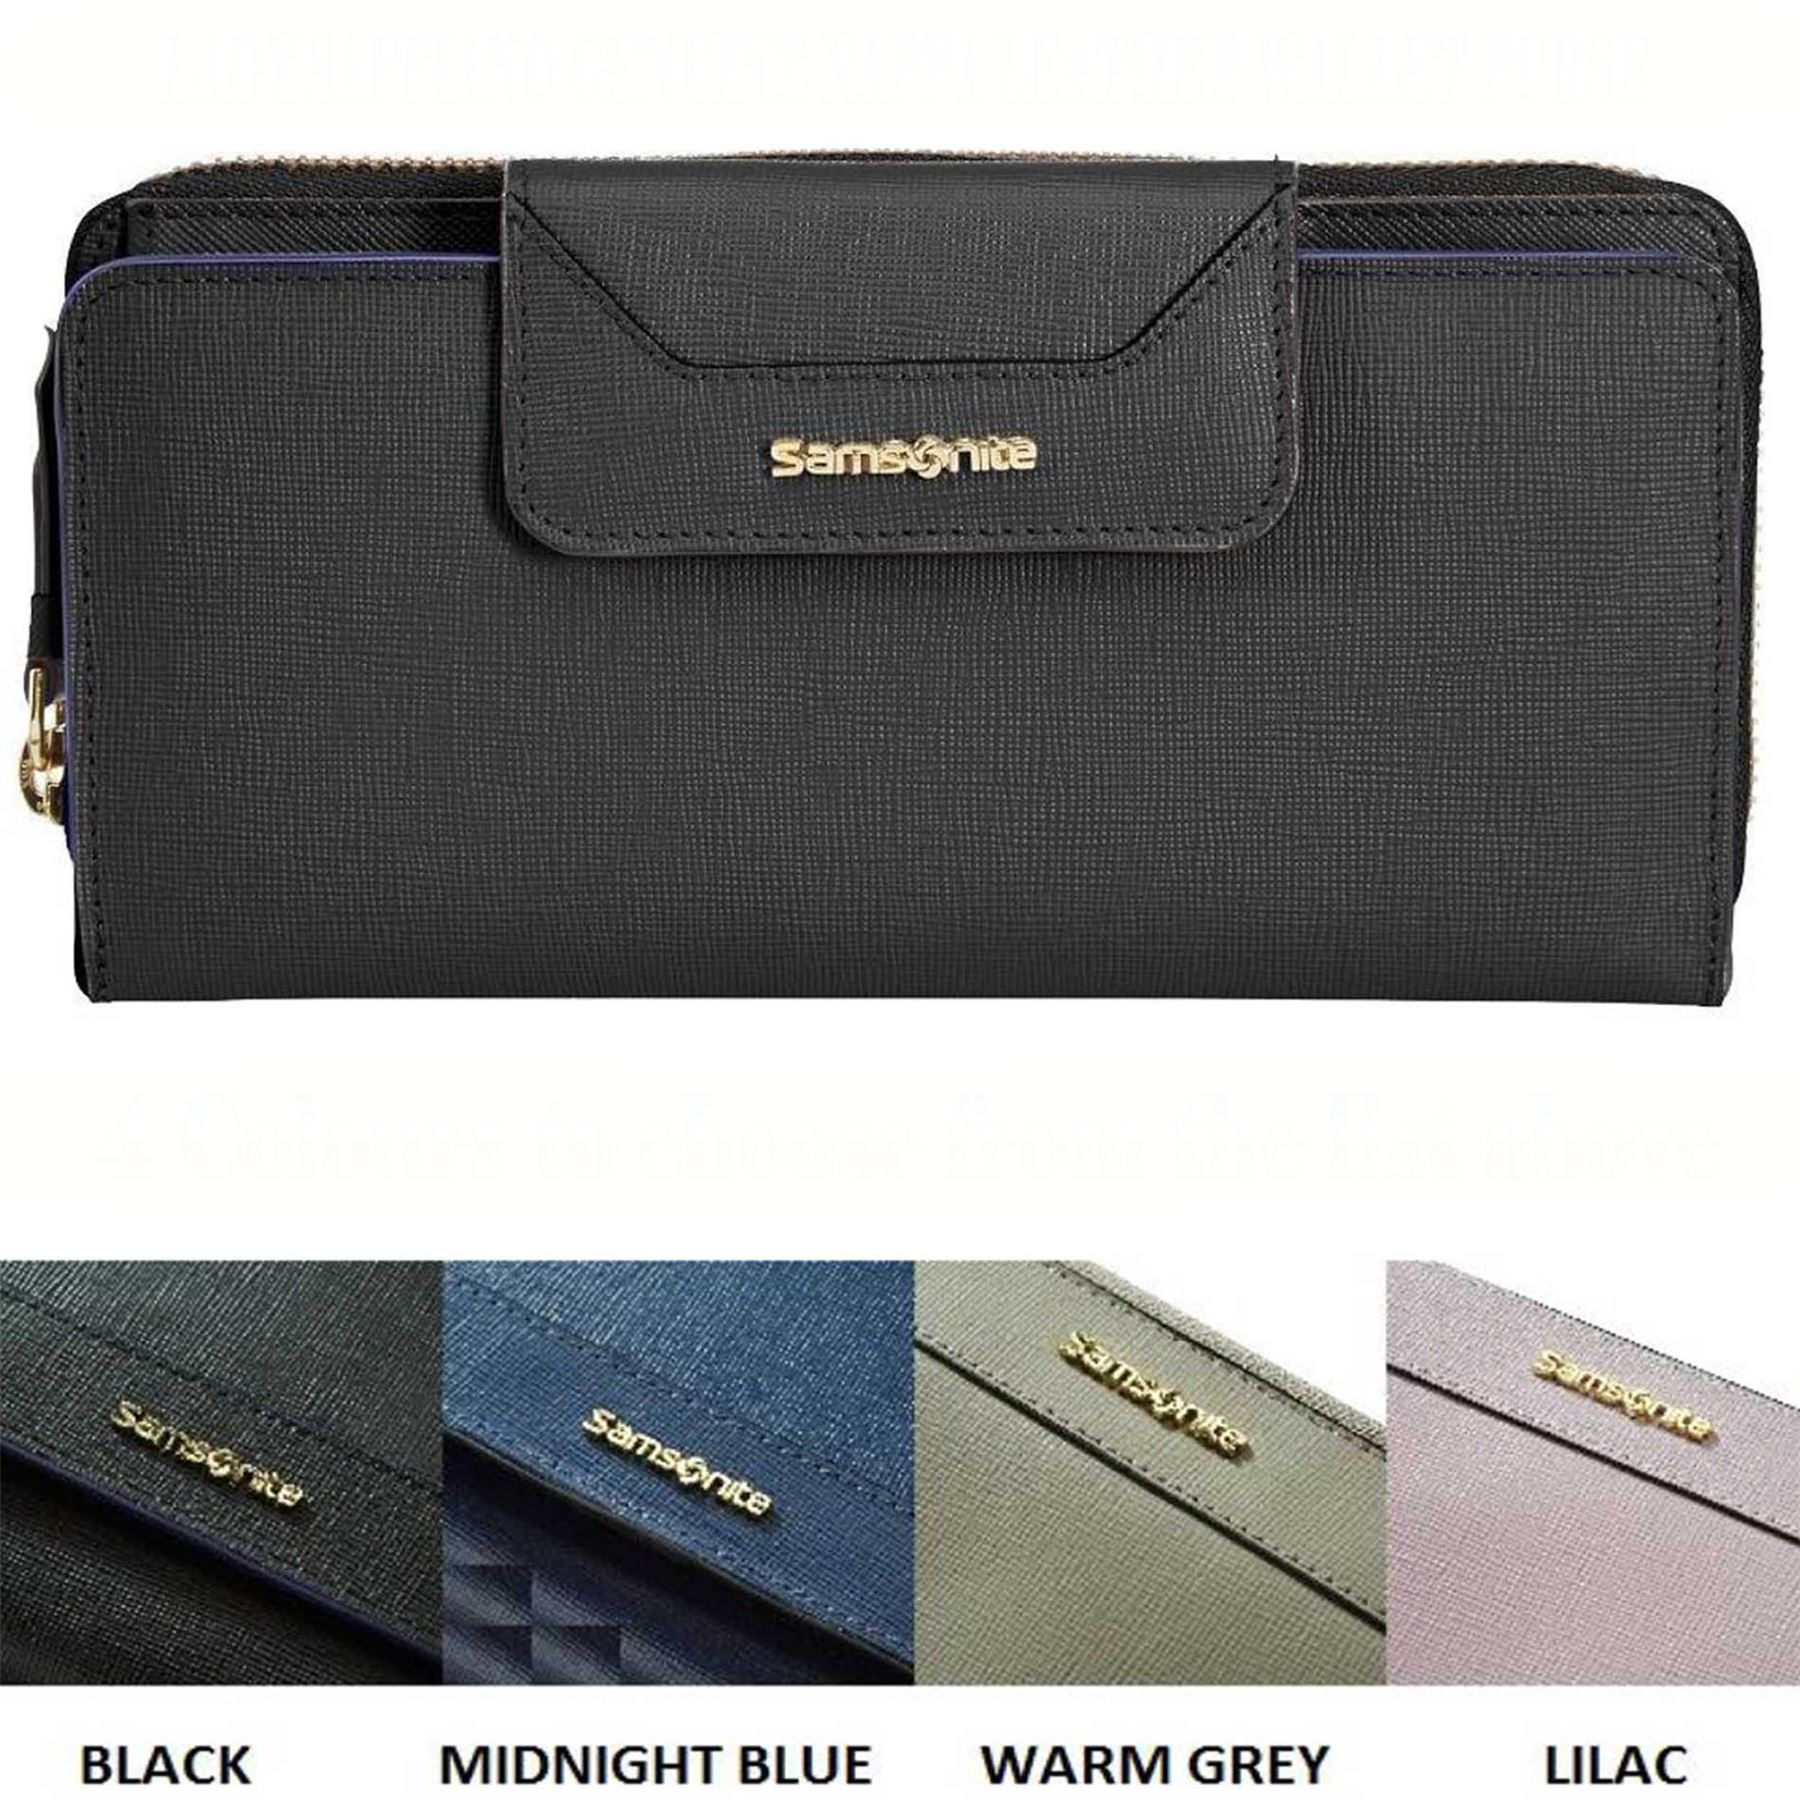 SAMSONITE LADY SAFFIANO GENUINE NAPPA LEATHER WALLET PURSE ...